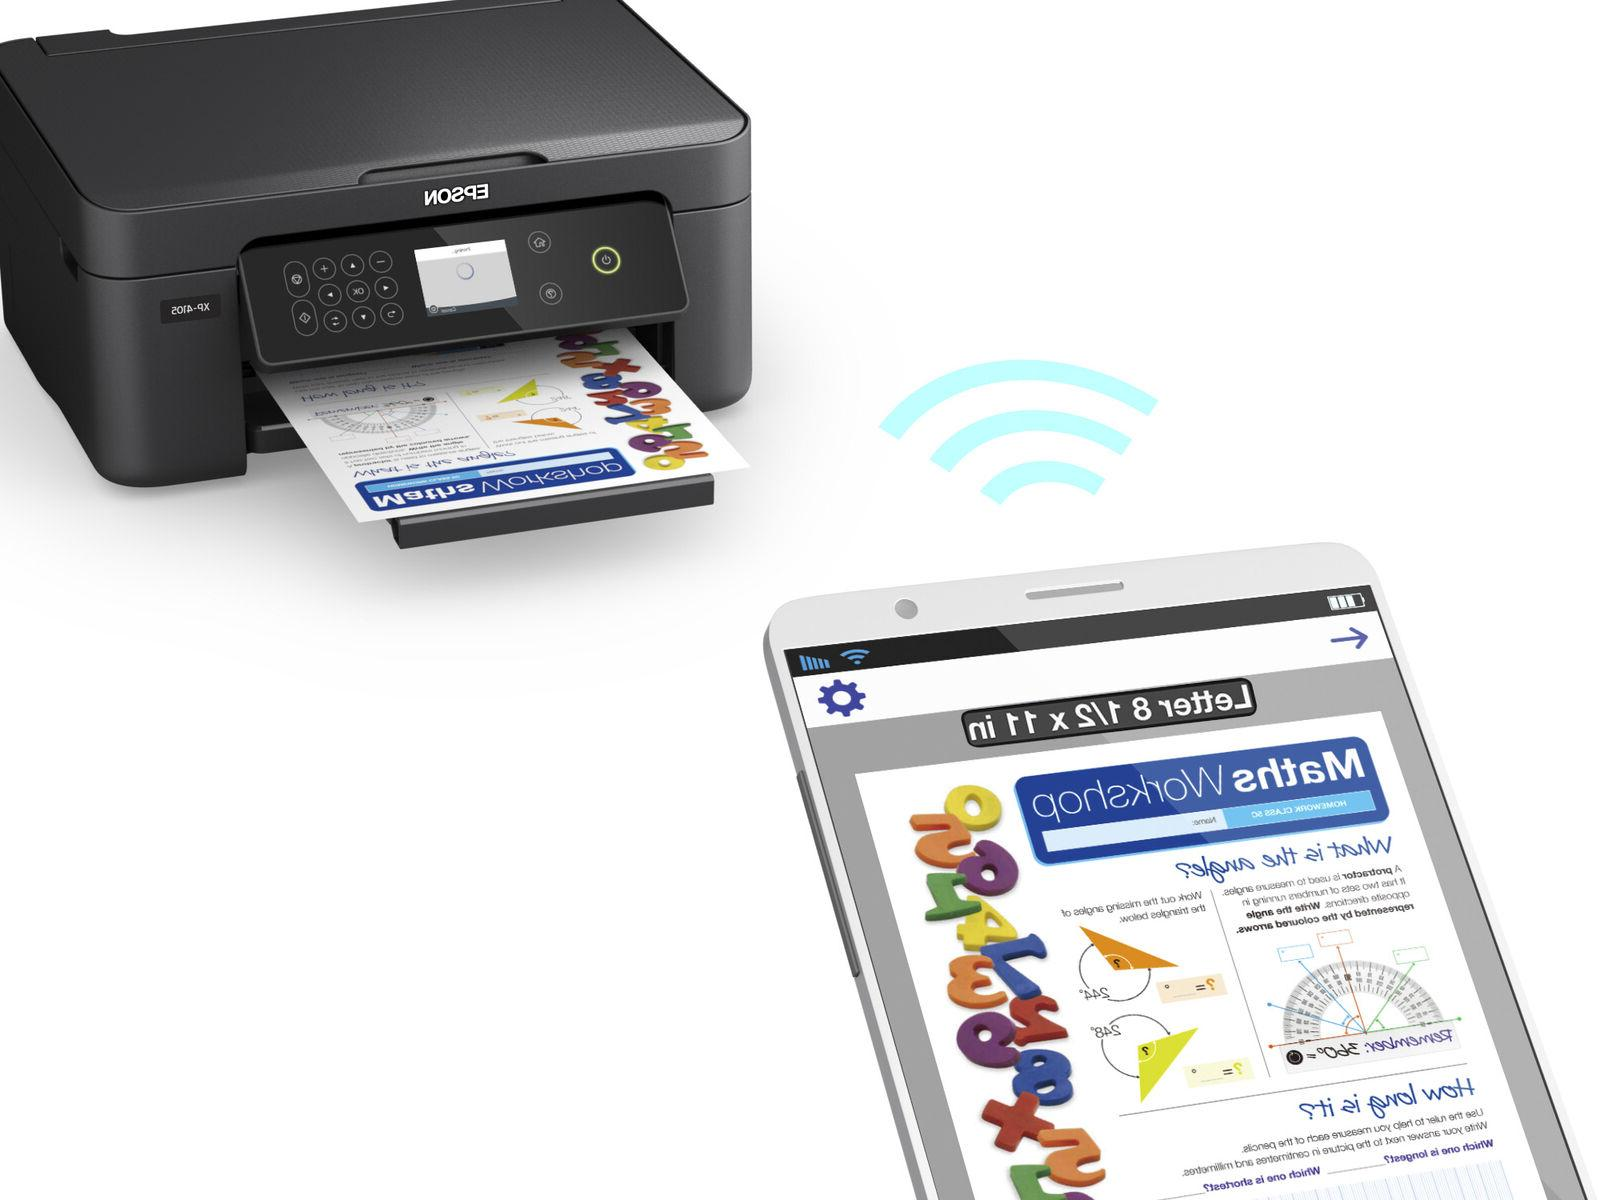 Epson Printer Copier All-In-One Office Wi-Fi INK